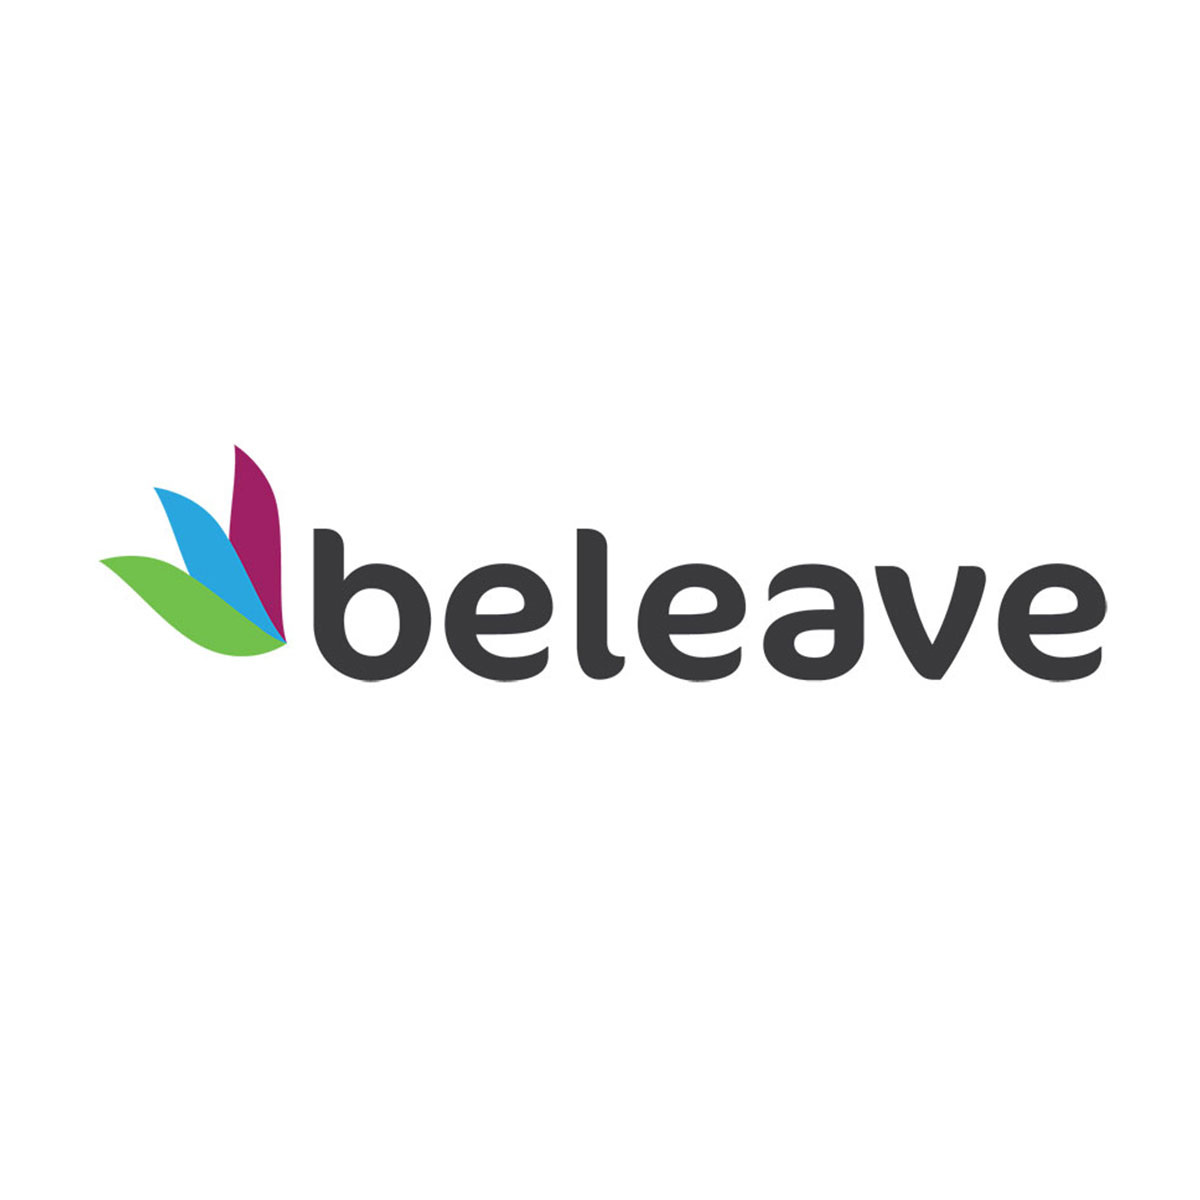 Brand Logo (alt) for Beleave